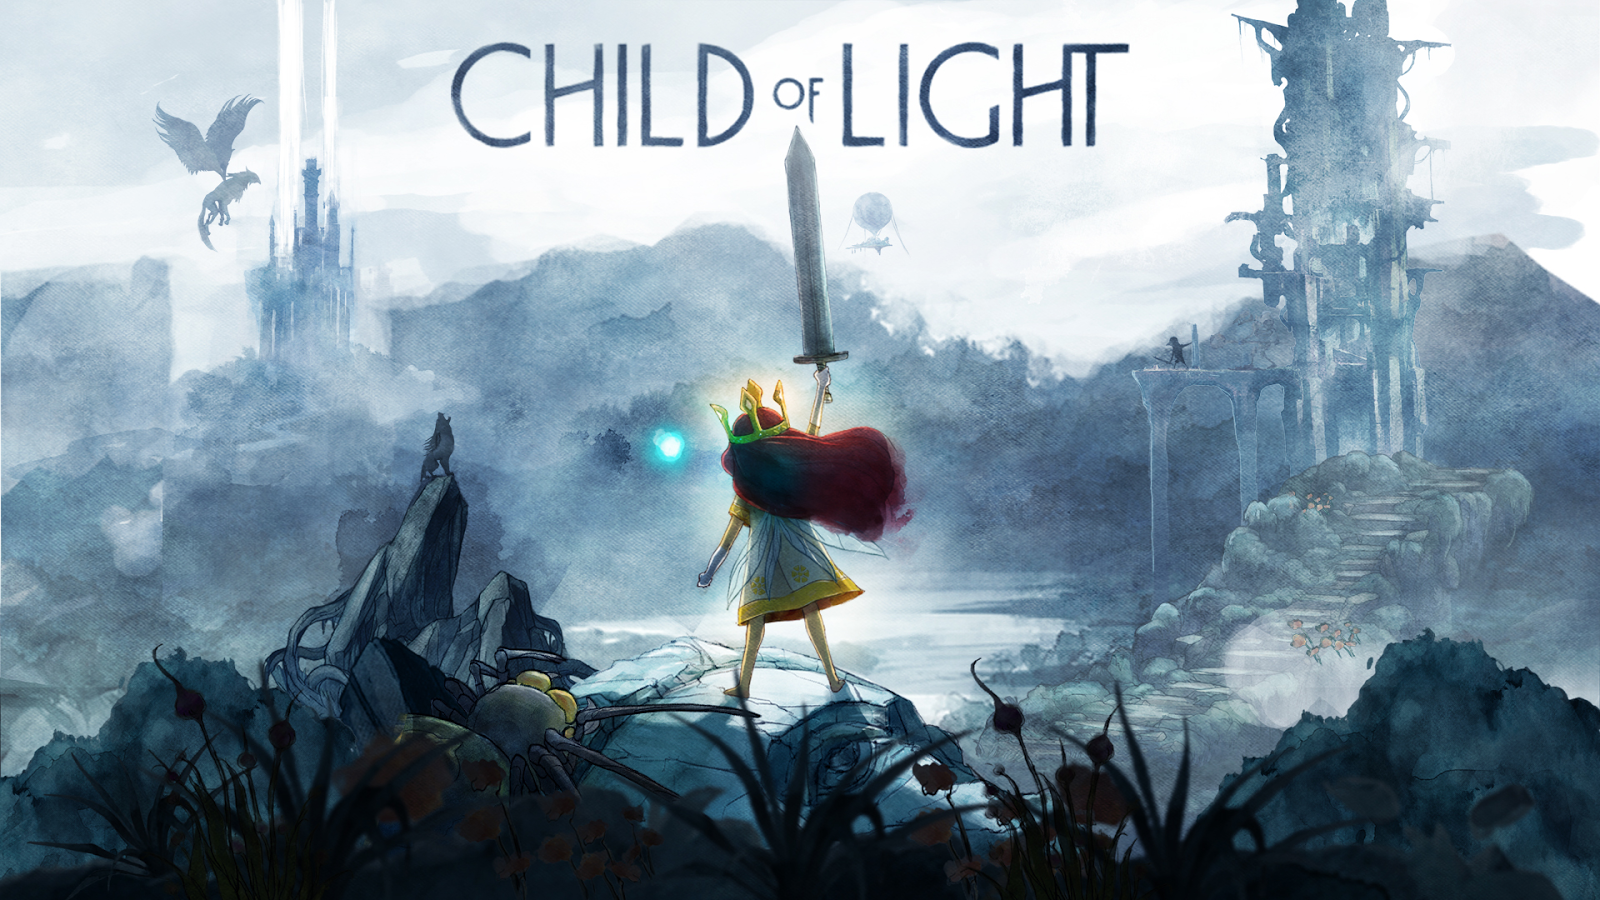 Child of light wallpaper